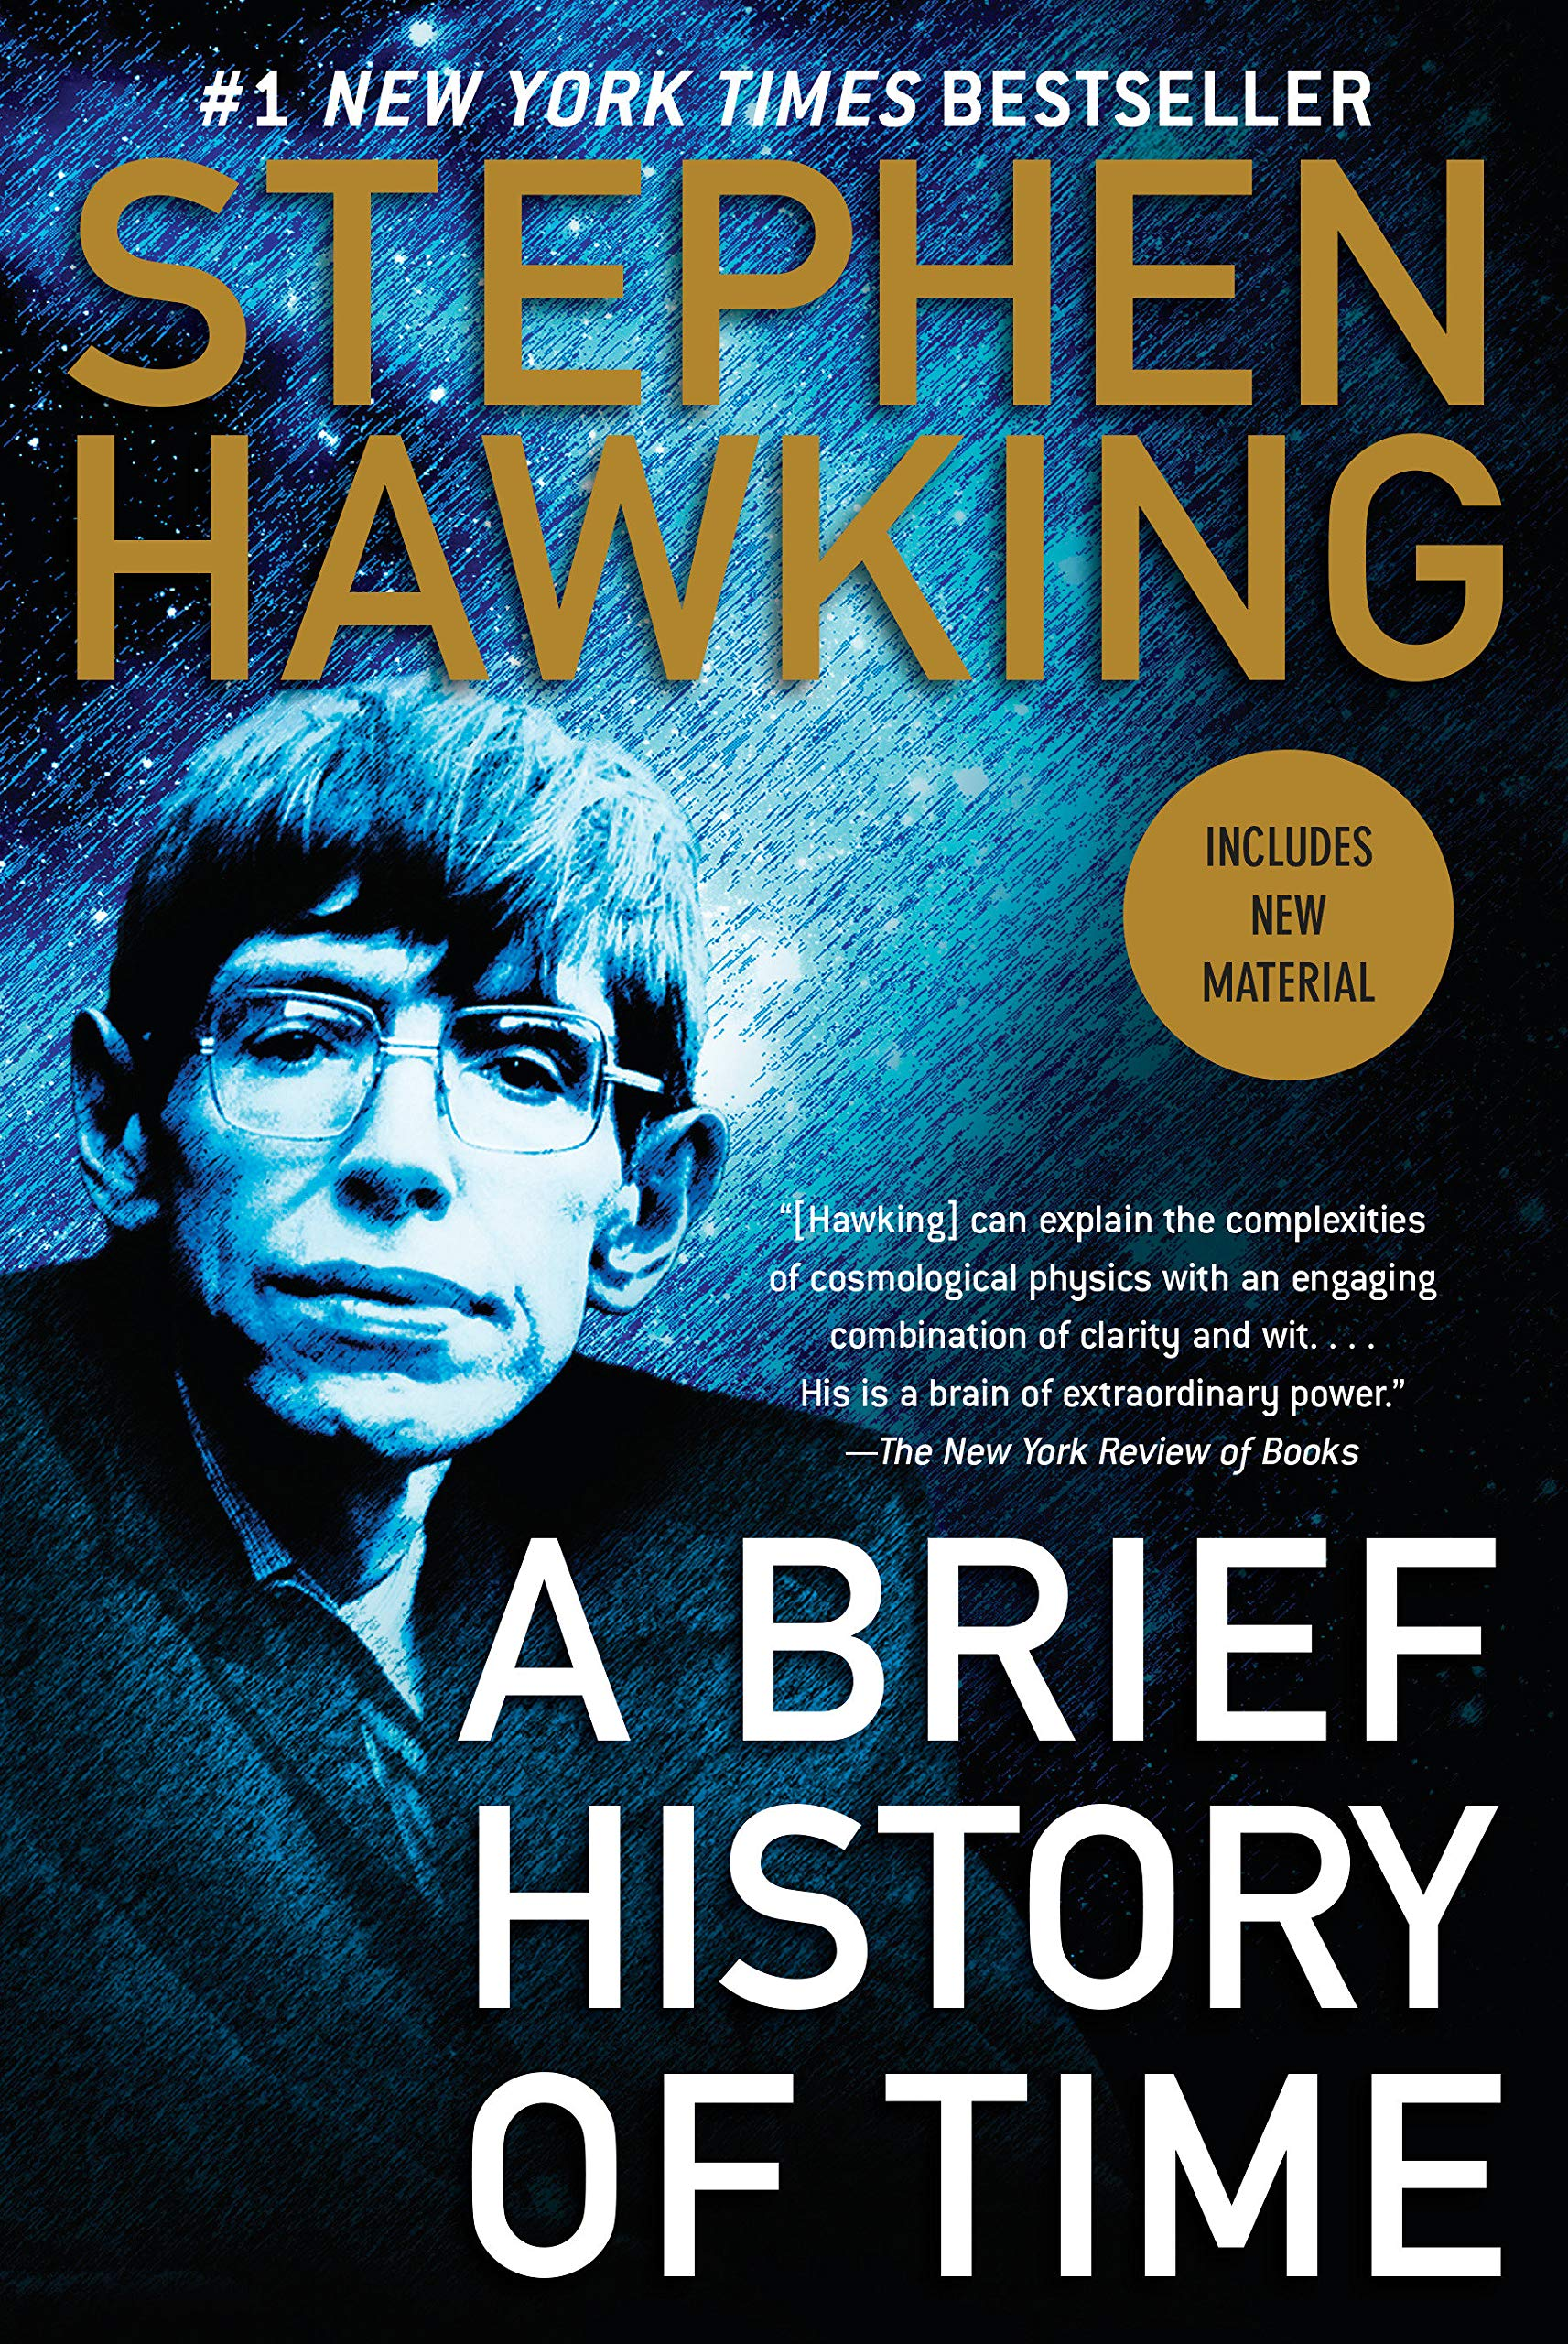 A brief history of time / Stephen Hawking